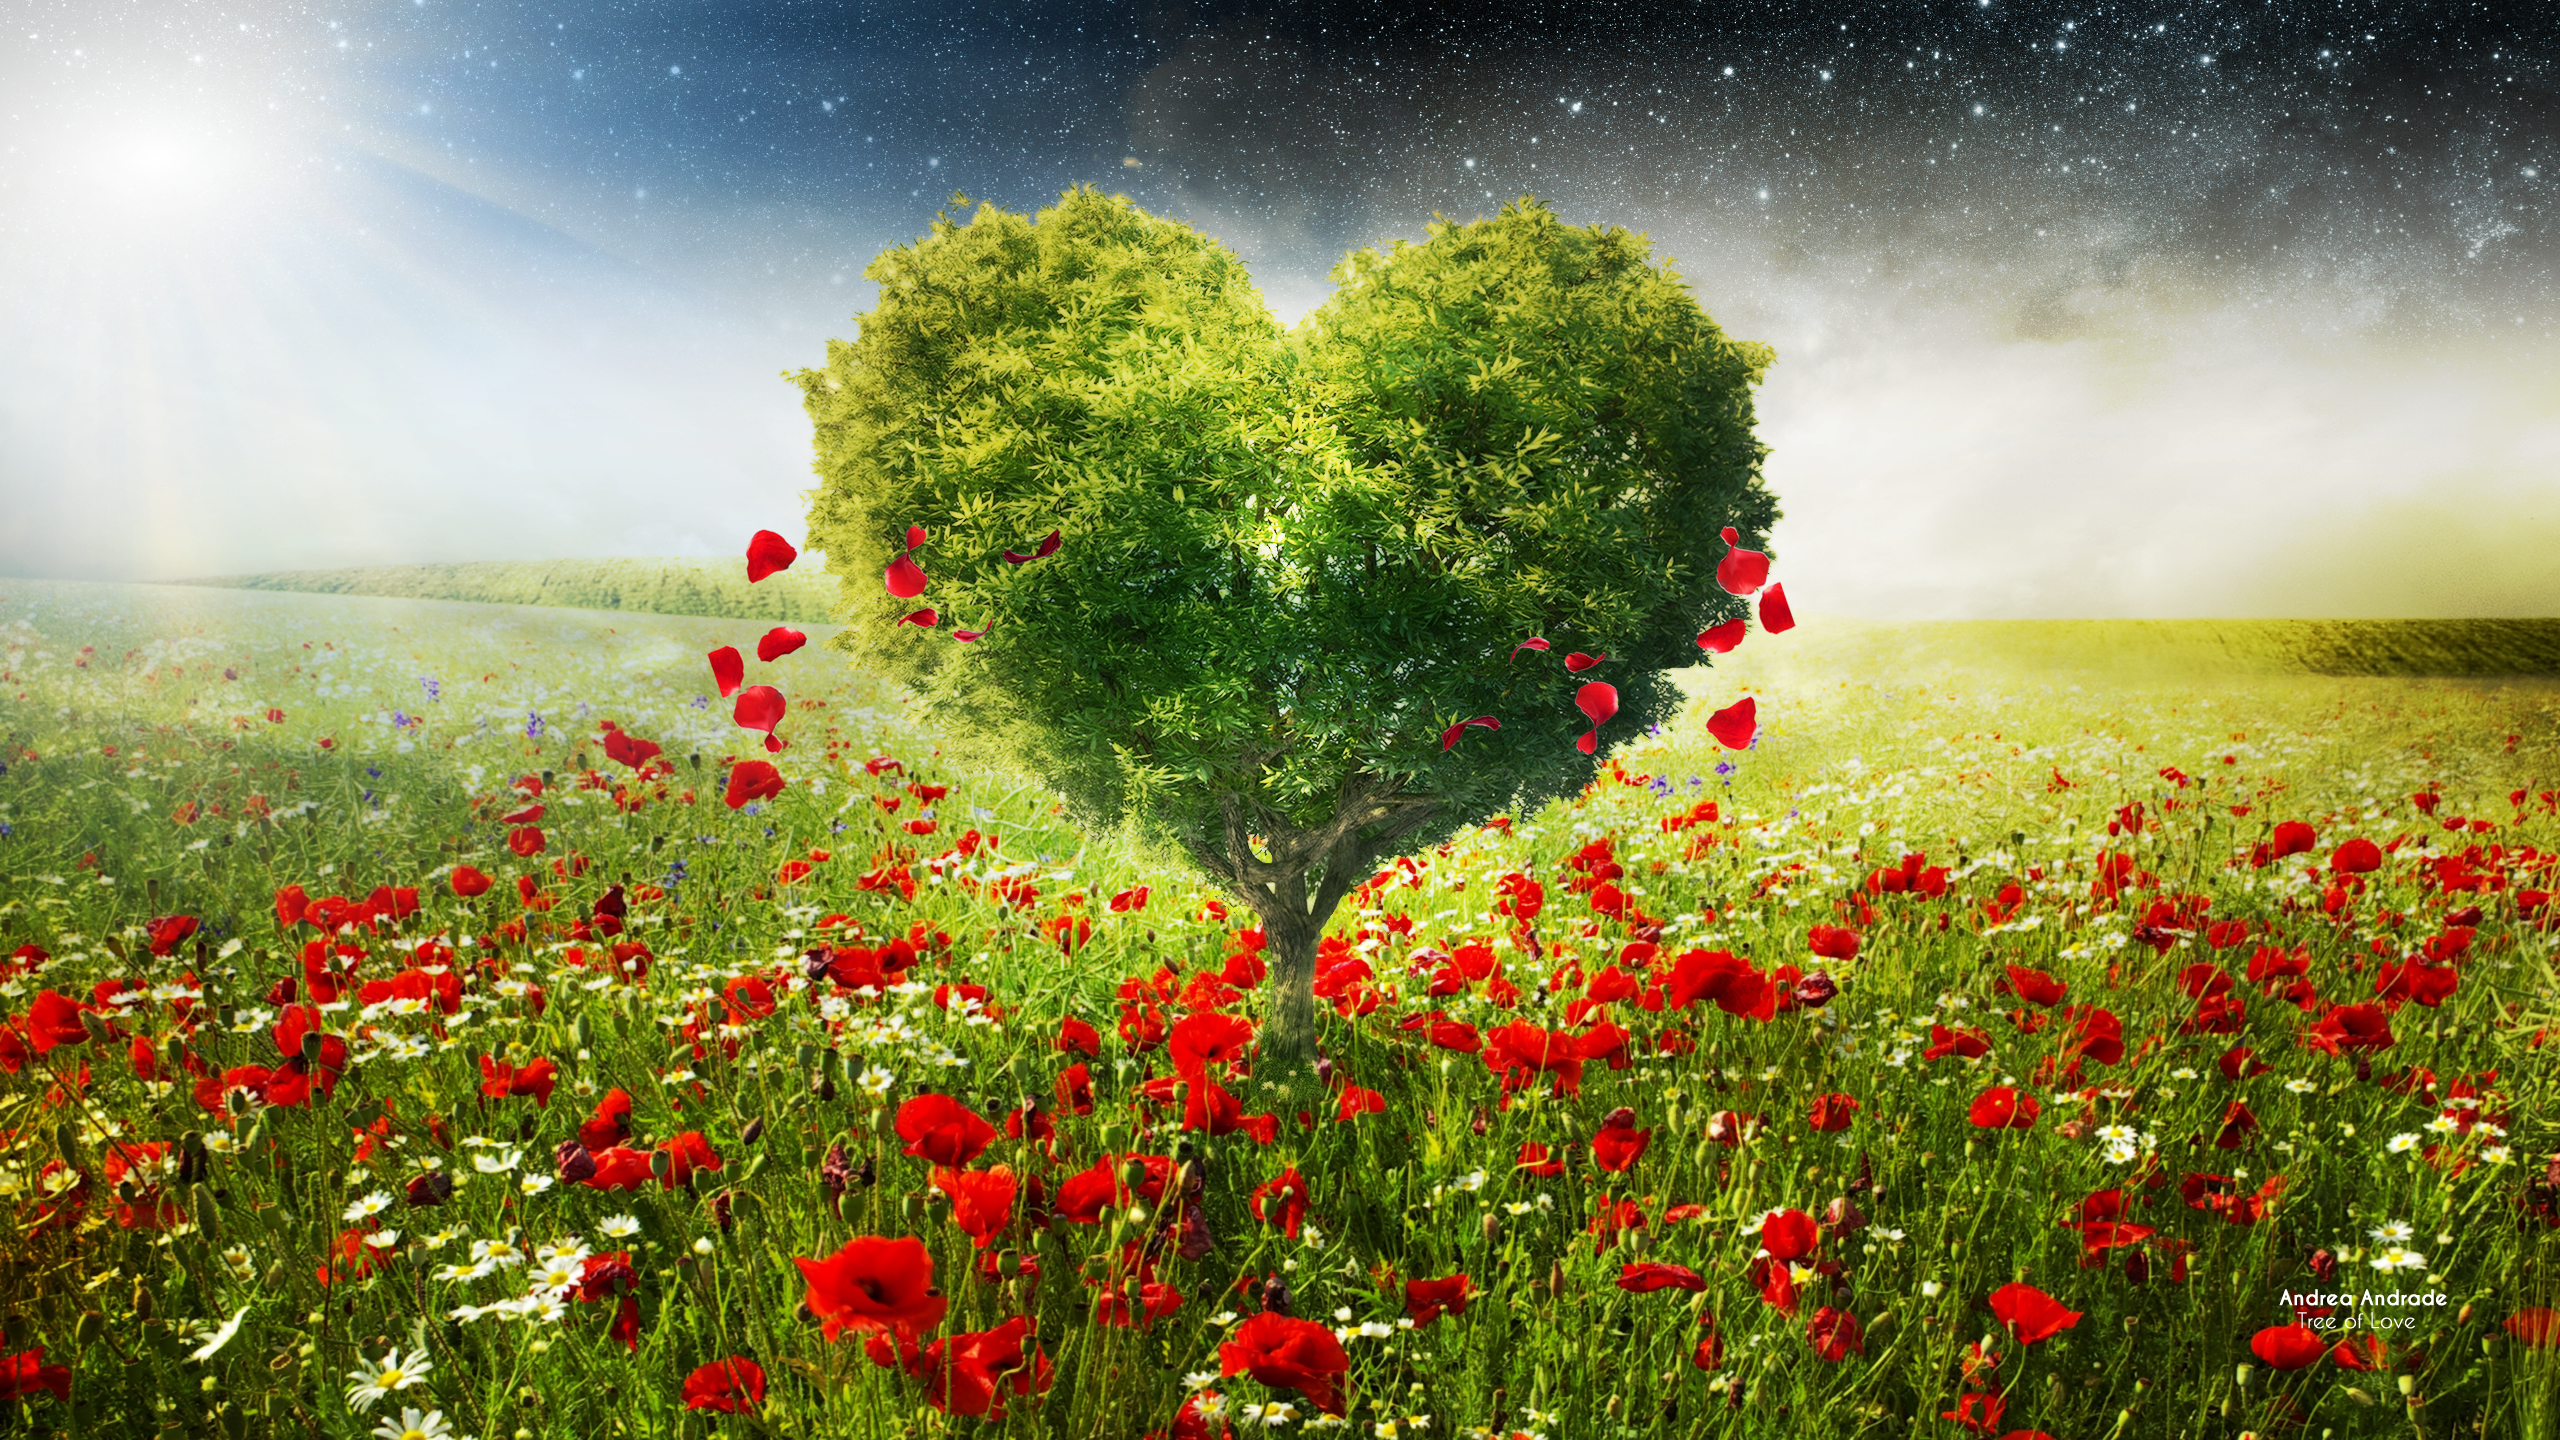 Green Love Heart Tree Poppies334609801 - Green Love Heart Tree Poppies - tree, Poppies, Love, Heart, Hands, green